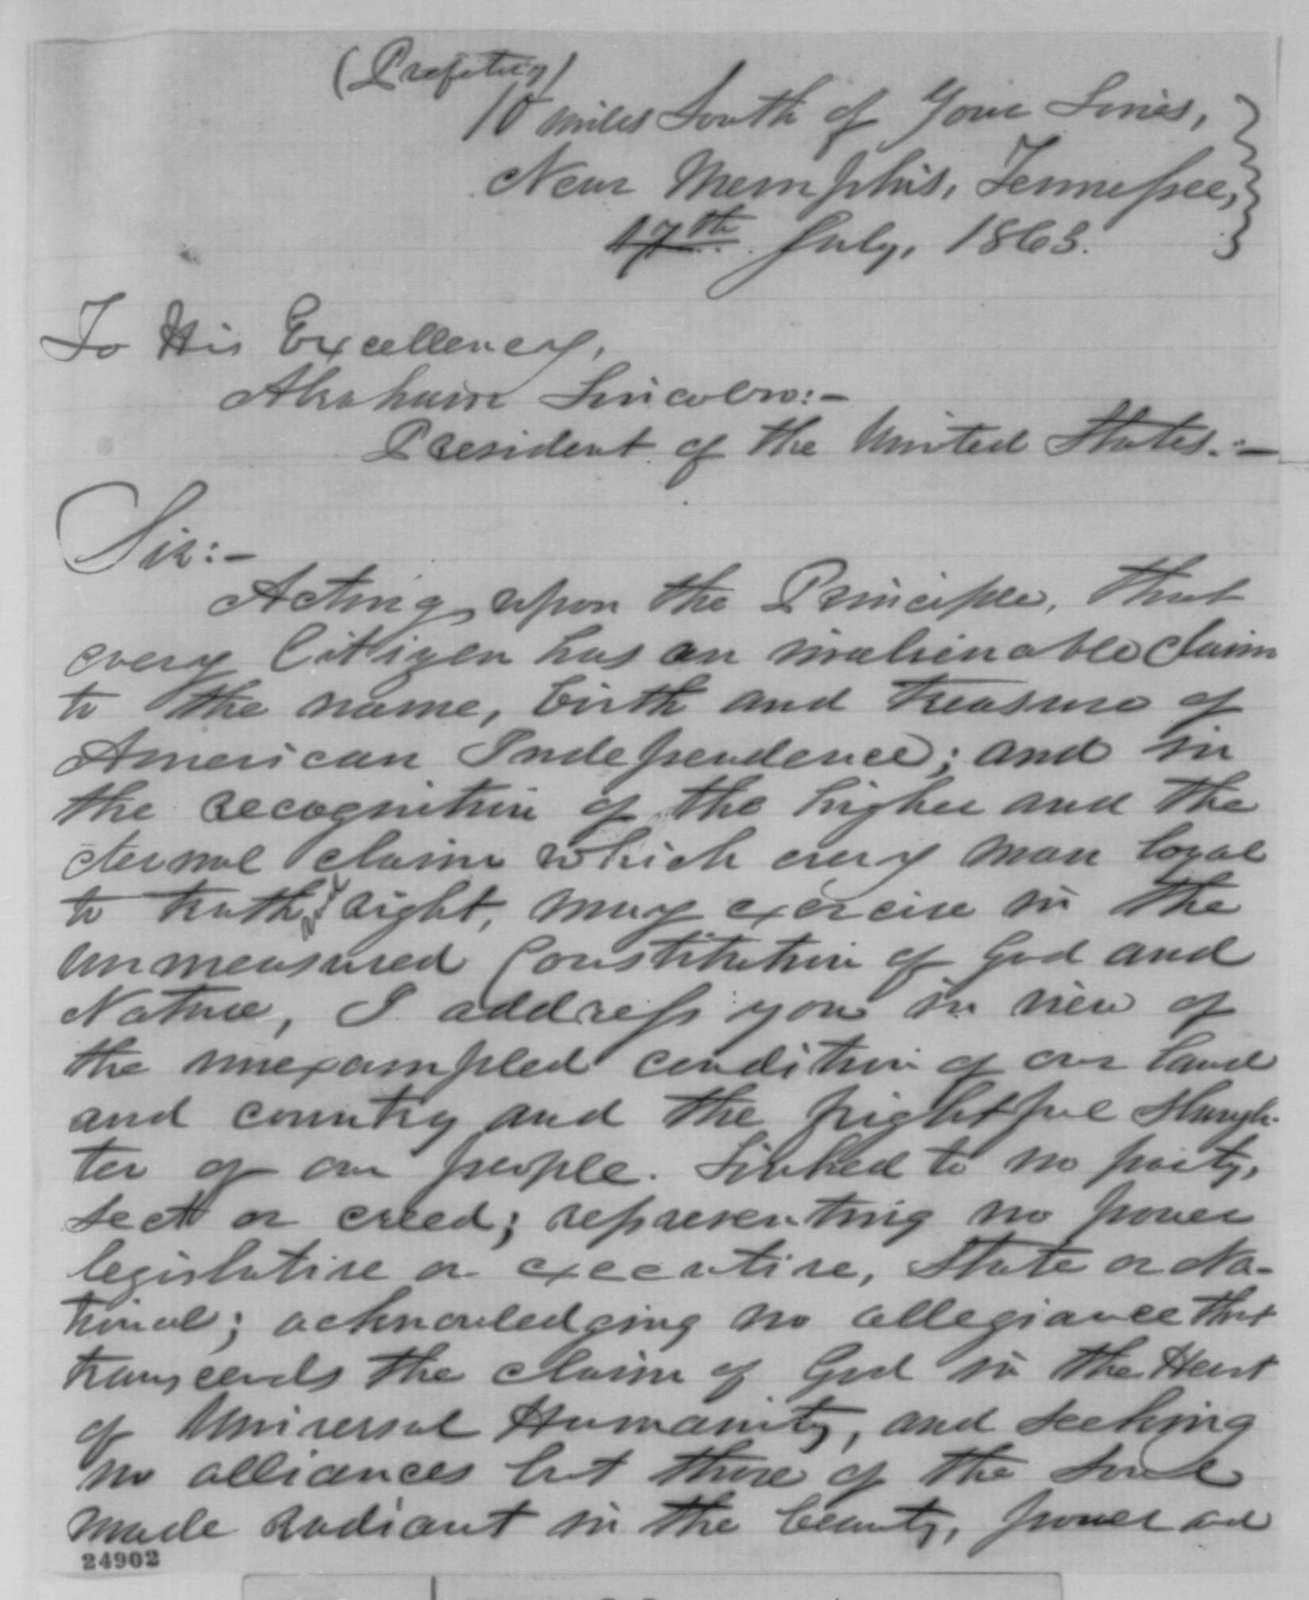 J. B. Ferguson to Abraham Lincoln, Friday, July 17, 1863  (Thoughts on the war)